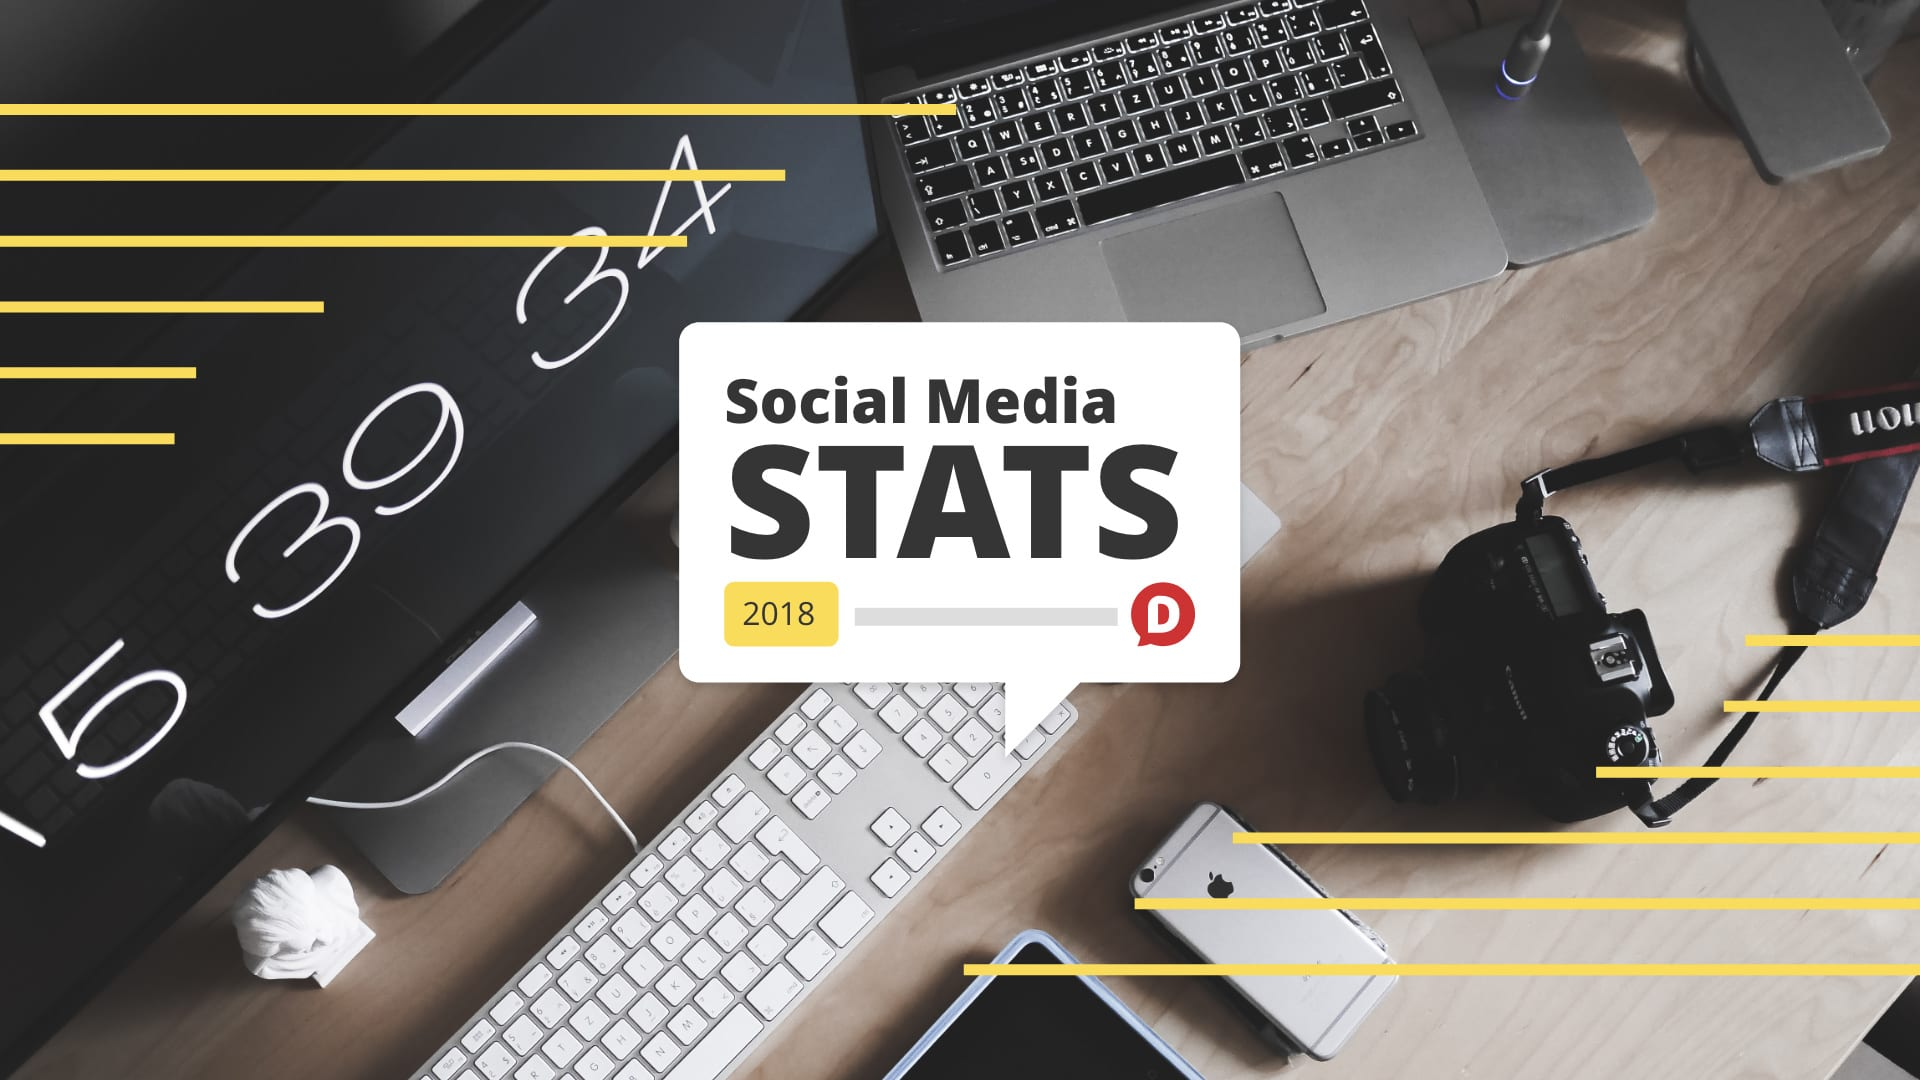 Computer desk with Tall image with social media stats 2018